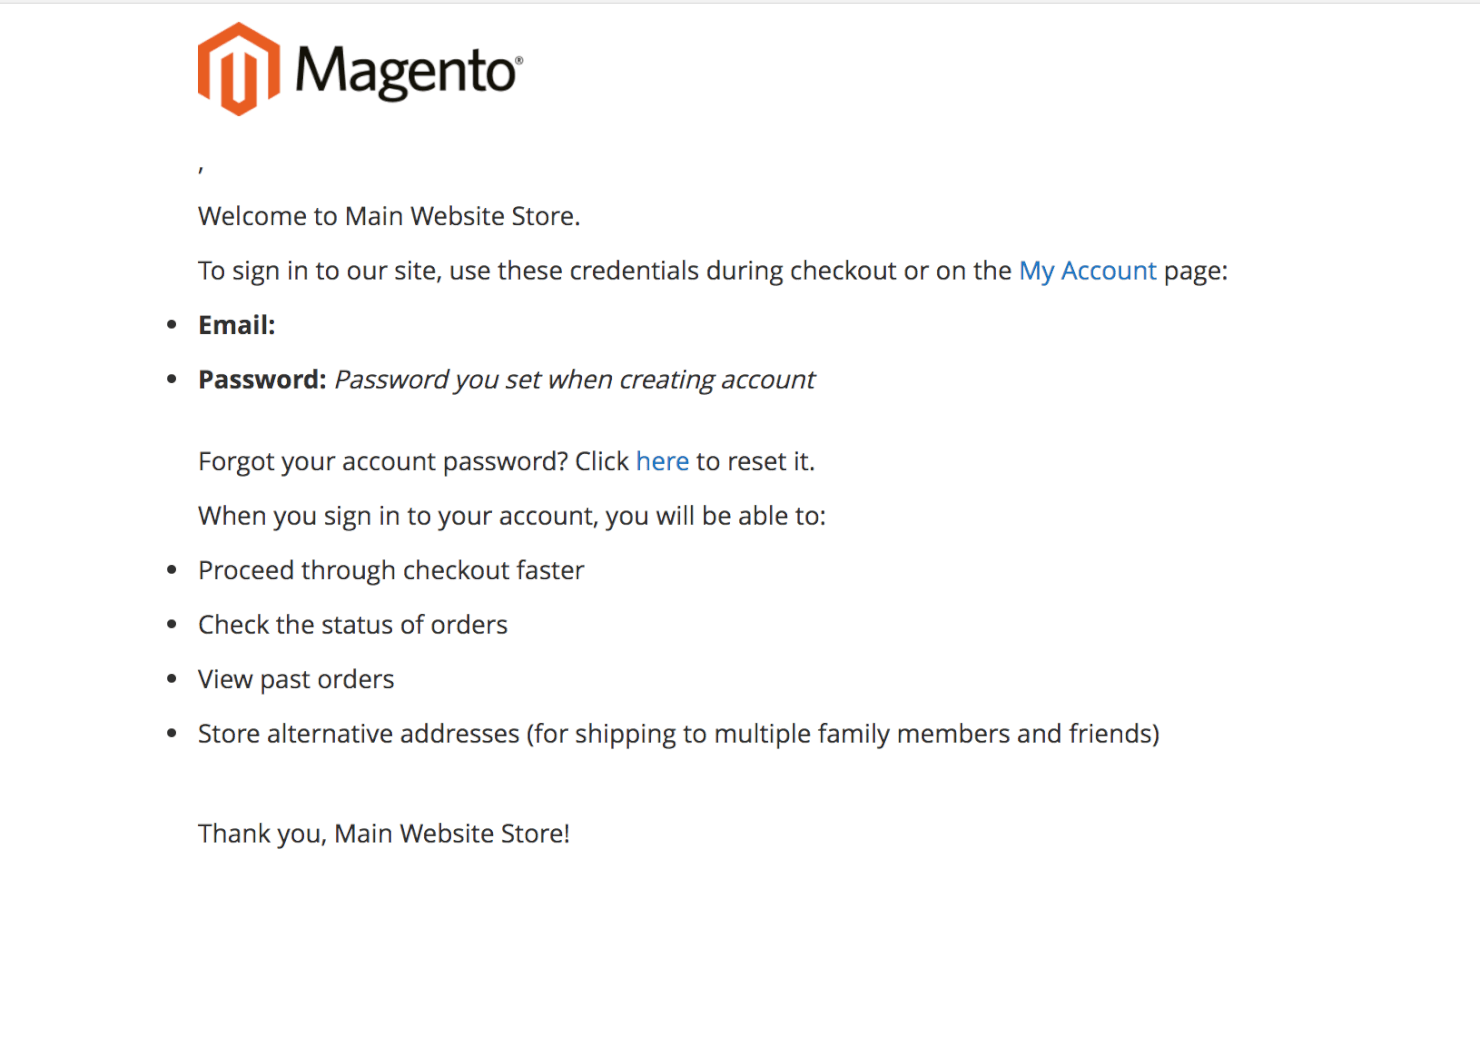 MAGENTO 2 TRANSACTIONAL EMAIL TEMPLATES - New Account